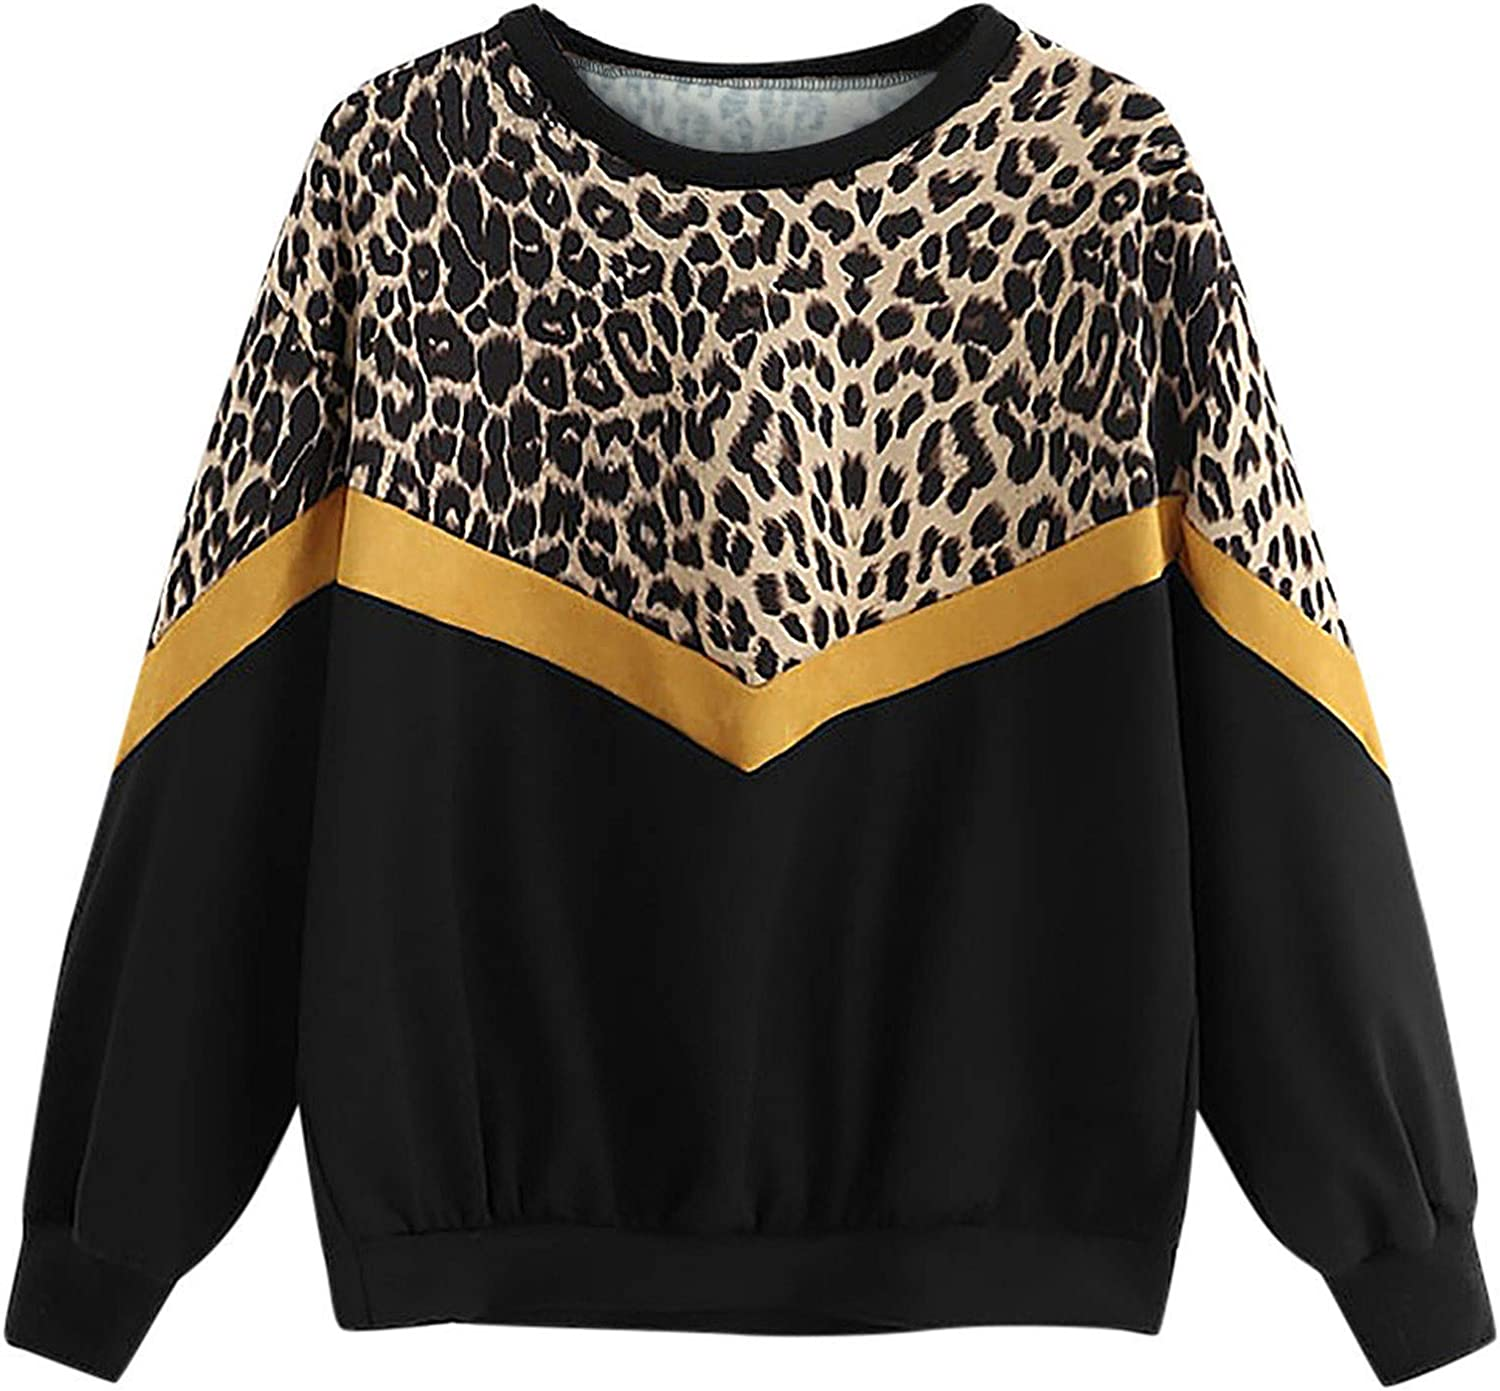 Stitching Sweatshirt New products, world's highest quality popular! for Women Crewneck Lo Award-winning store Pullover Tops Leopard